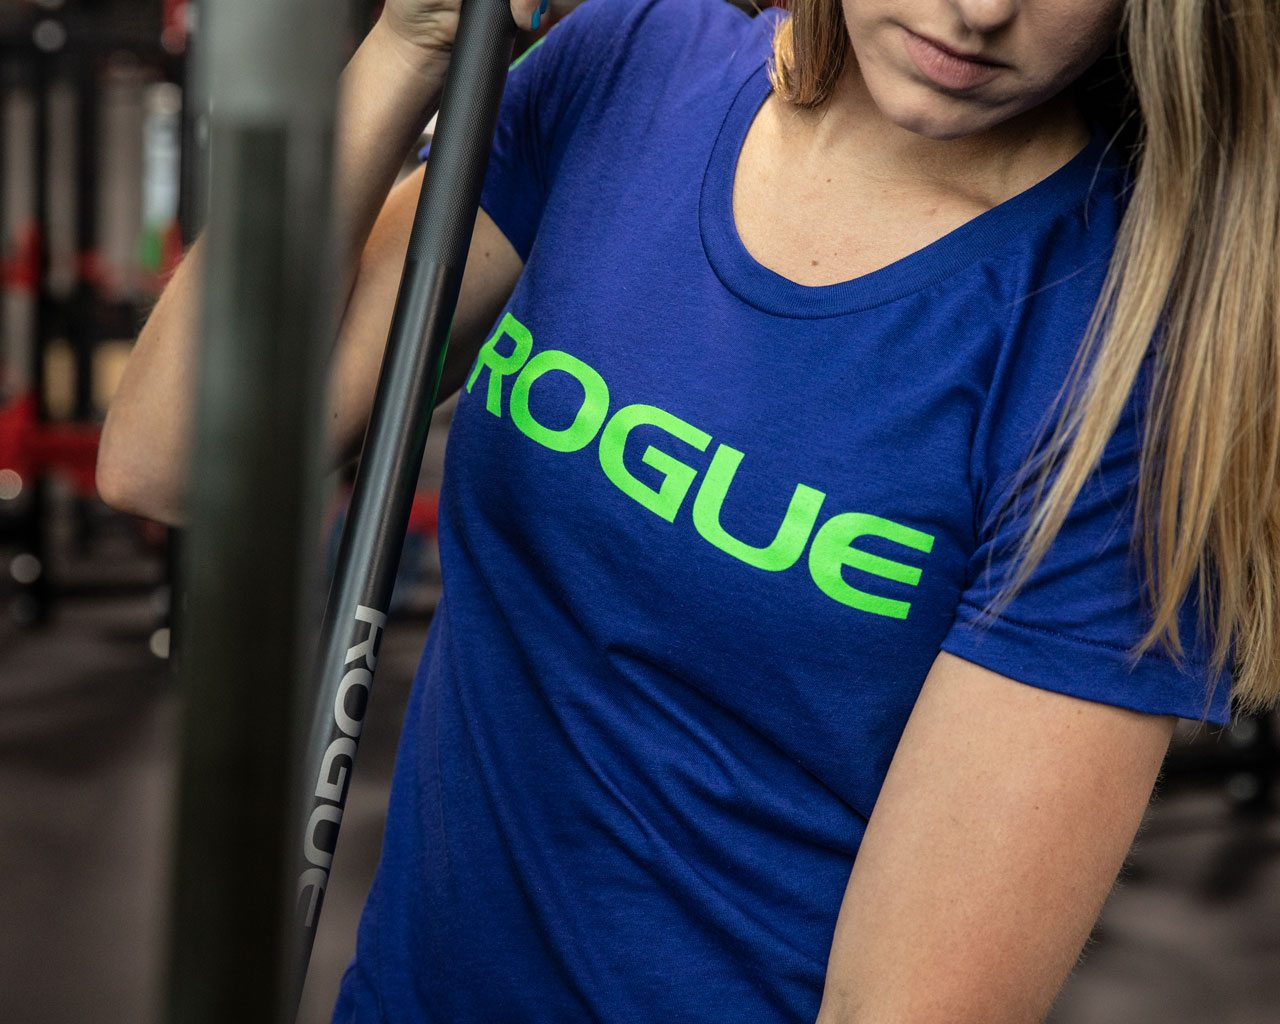 2ac693b1f1b Just Launched: Rogue Basic Shirts! - Rogue Fitness Email Archive